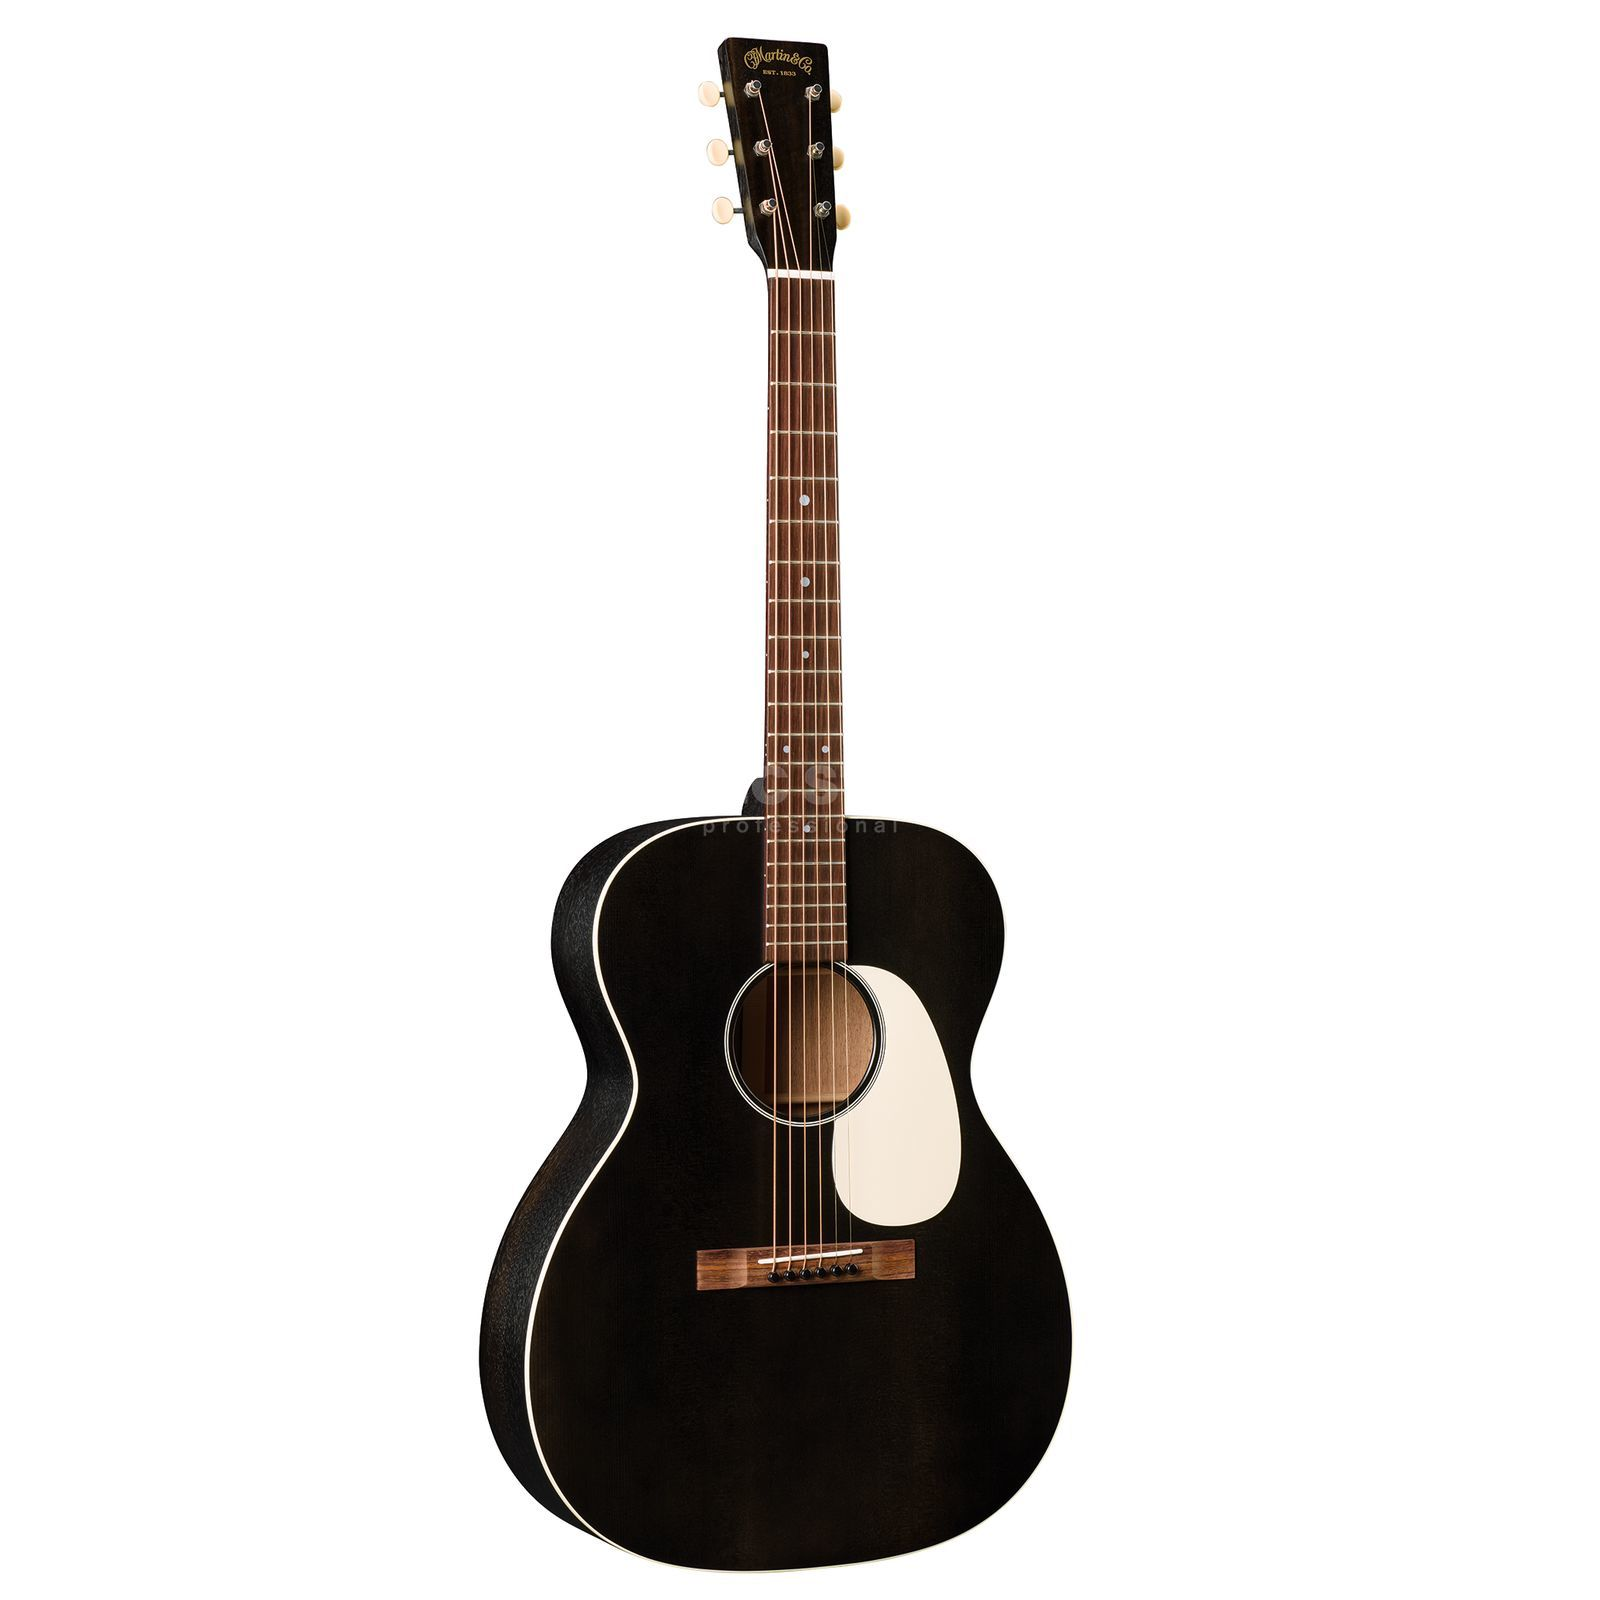 Martin Guitars 000-17 Black Smoke Produktbild